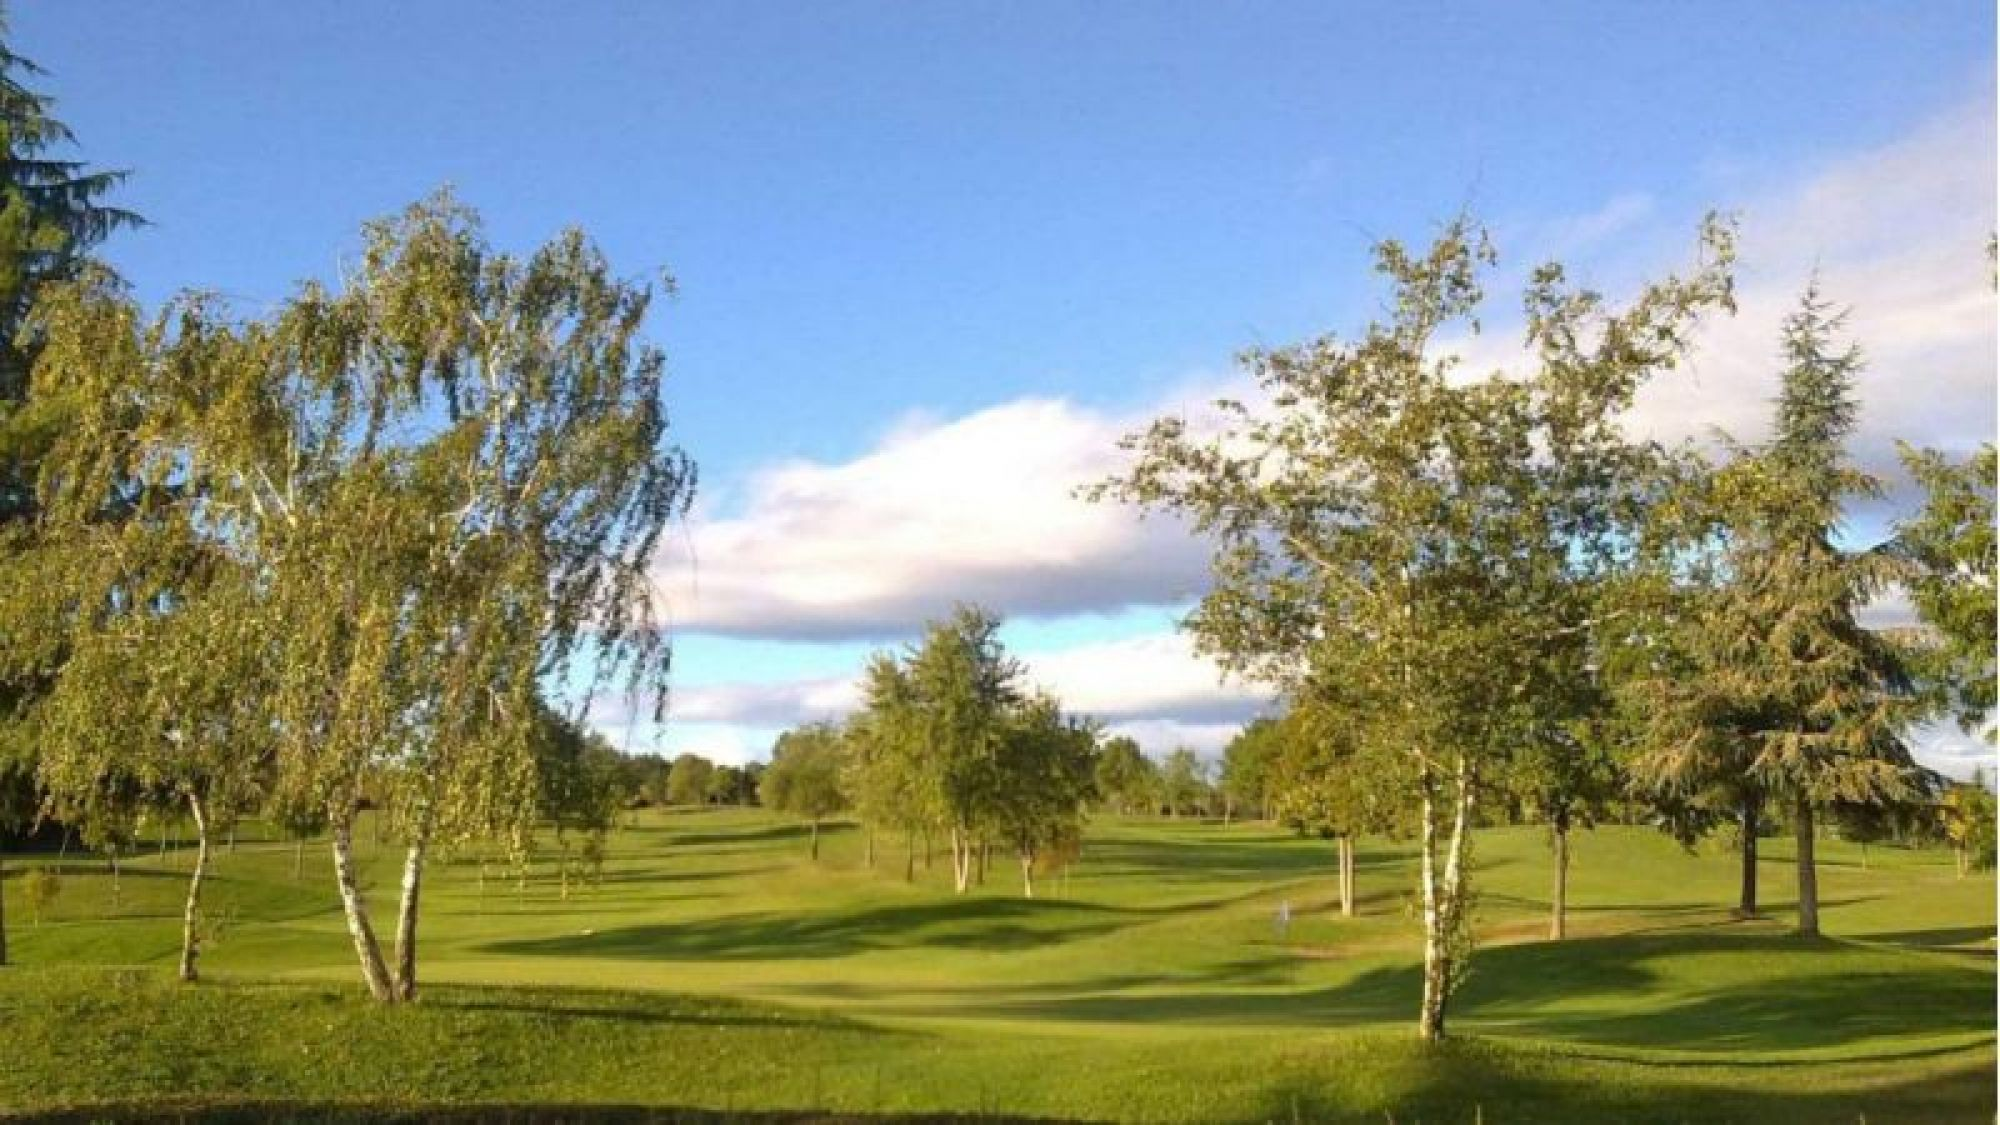 Golf Club Castell'Arquato boasts some of the most desirable golf course within Northern Italy